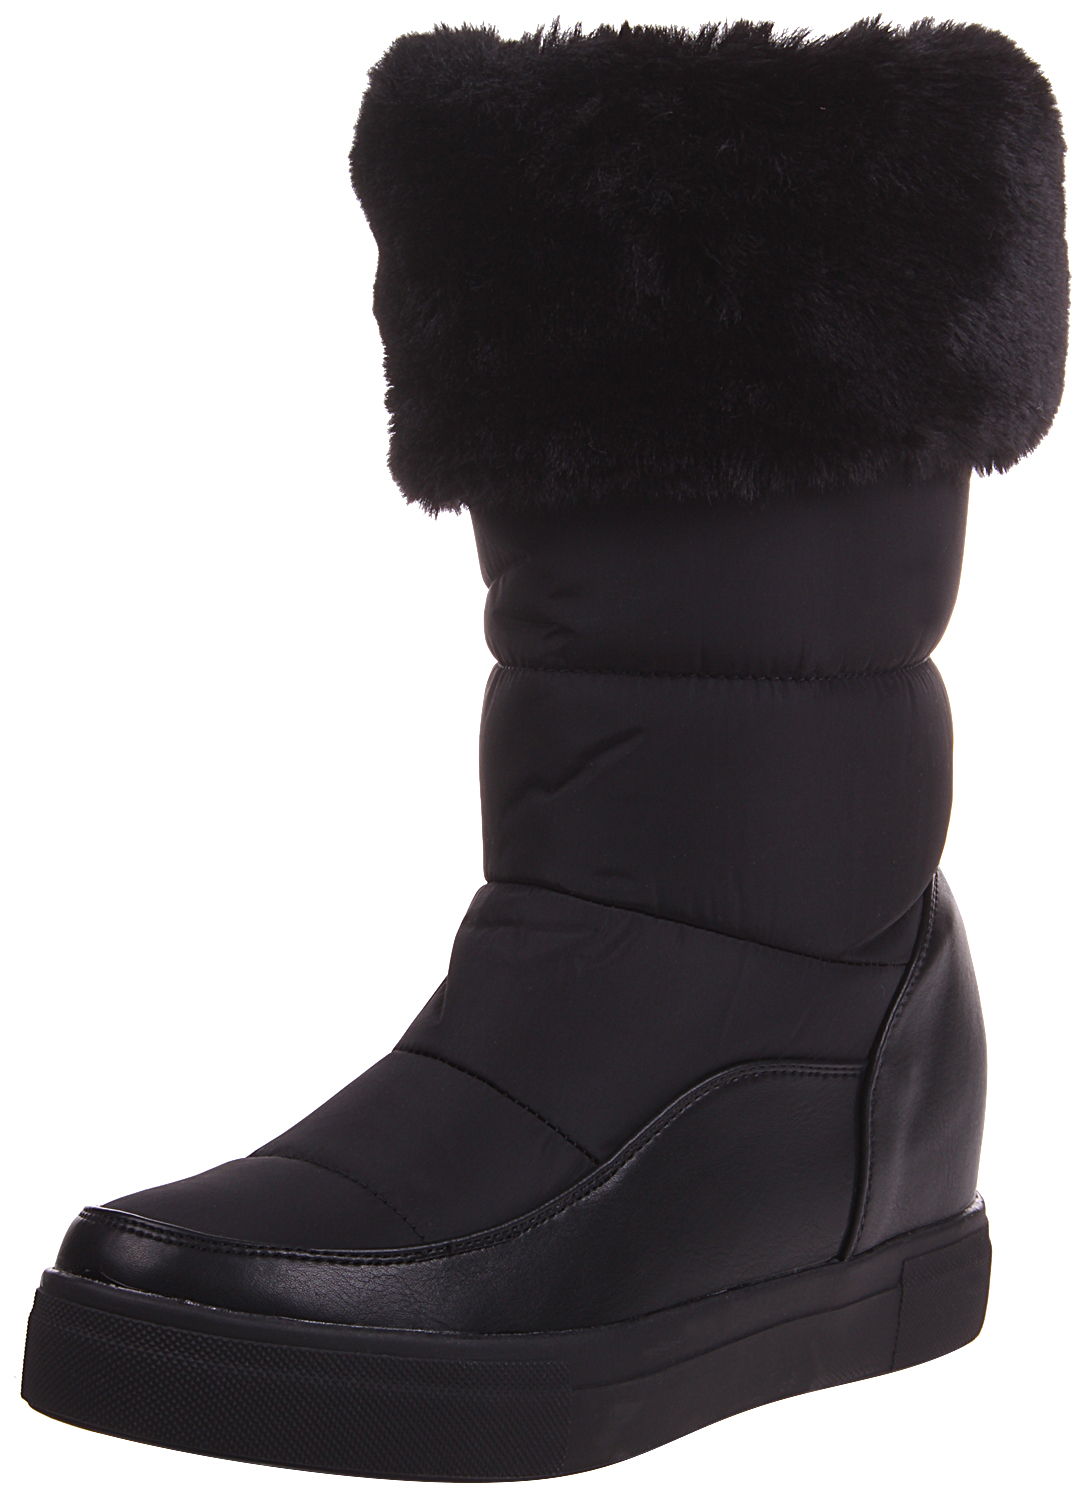 Enimay Women's Faux Fur Lined Water Resistant Mid-Calf Slip-On Winter Boot Black 6 by Enimay